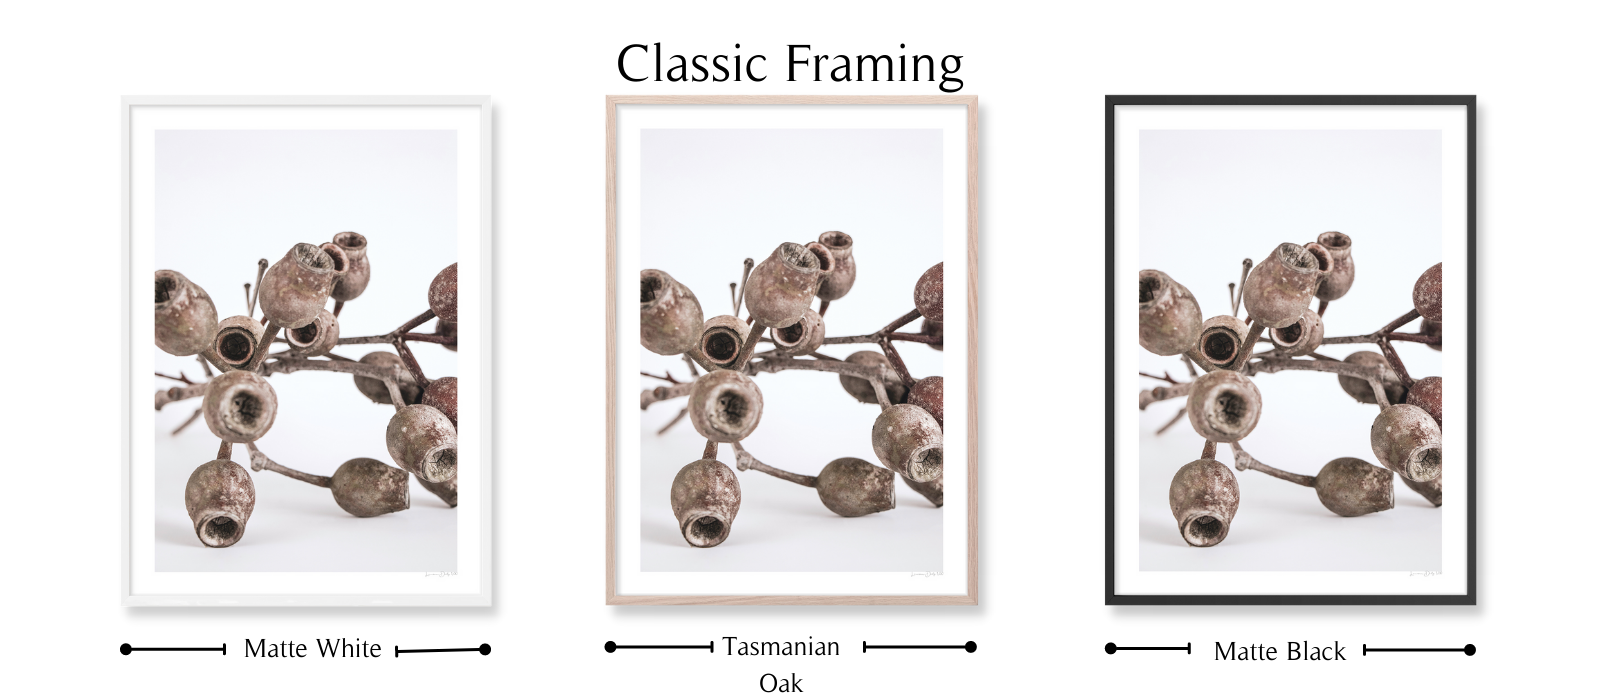 Gumnuts by Lauren Daly | Classic Framing Style | LD Art House